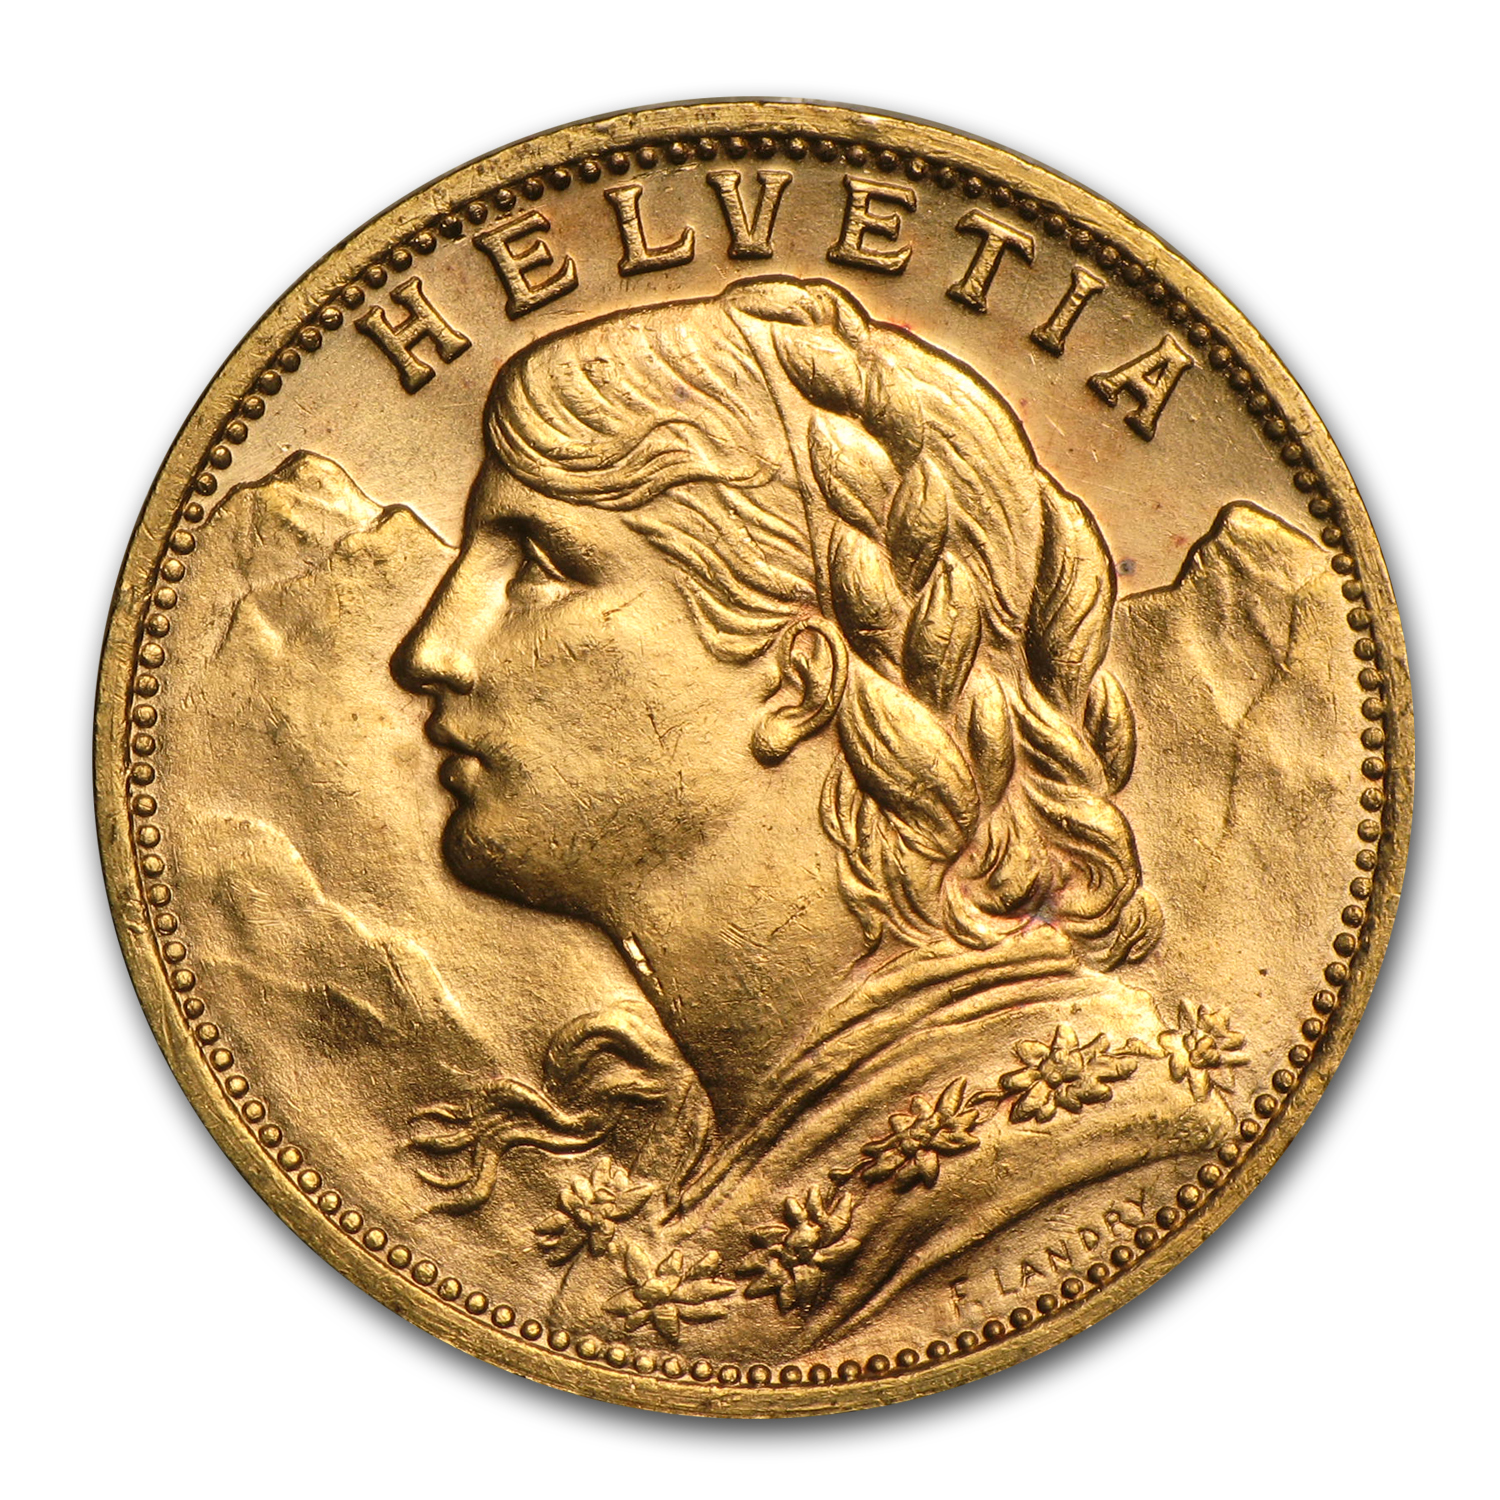 Switzerland 1935-B Gold 20 Francs (Almost Uncirculated)